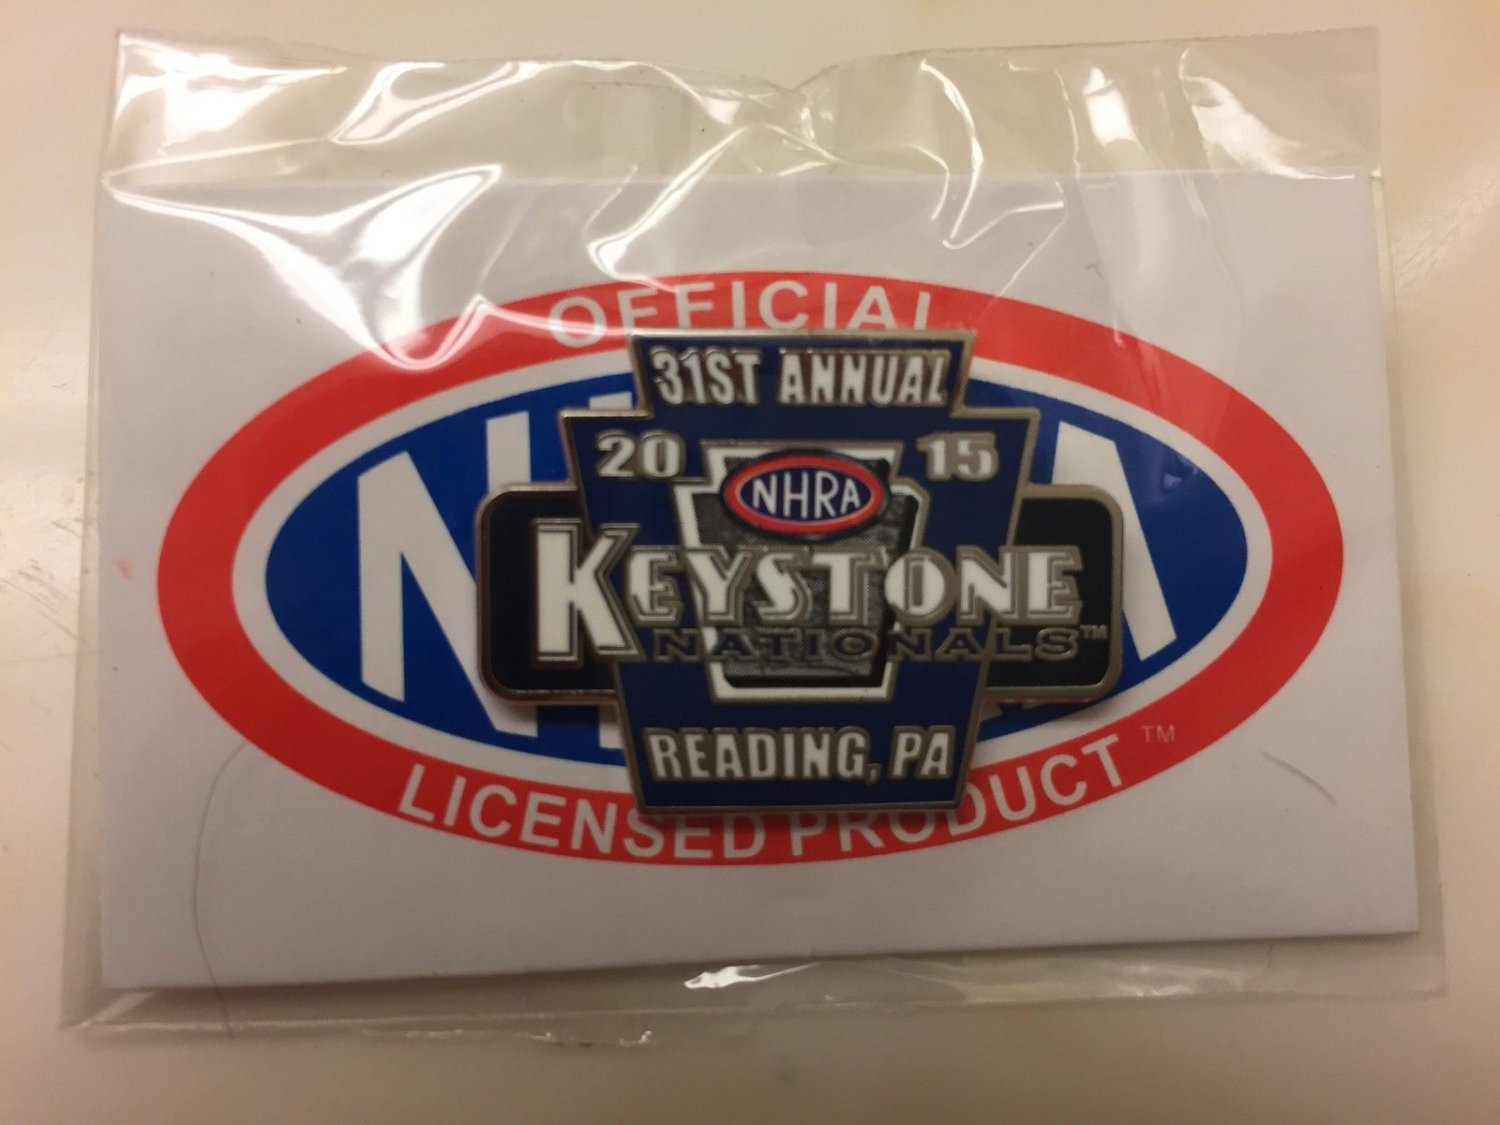 2015 NHRA Event Pin Reading